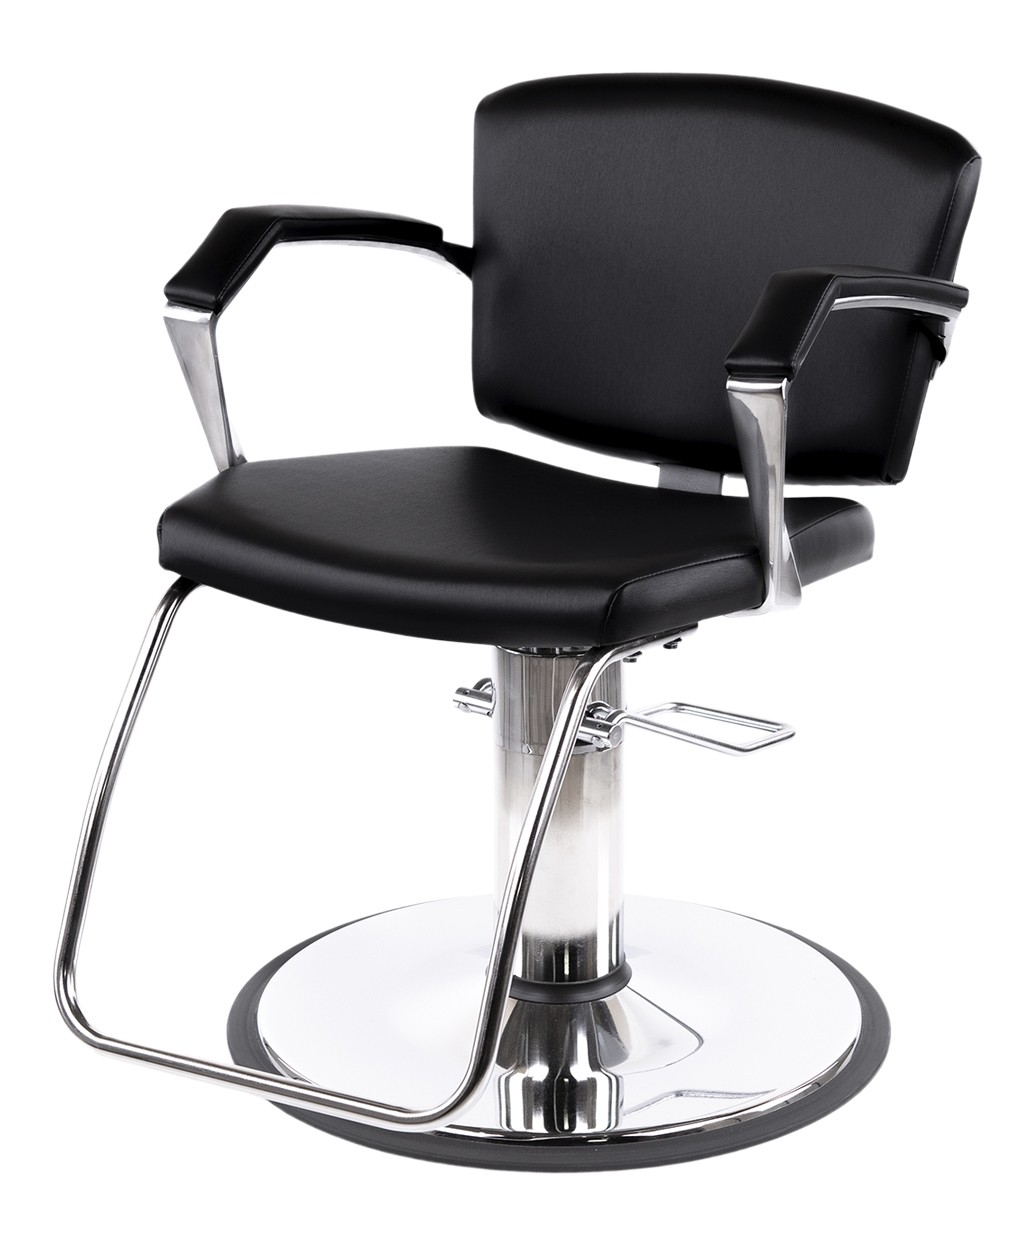 Collins 5201 Adarna Styling Chair